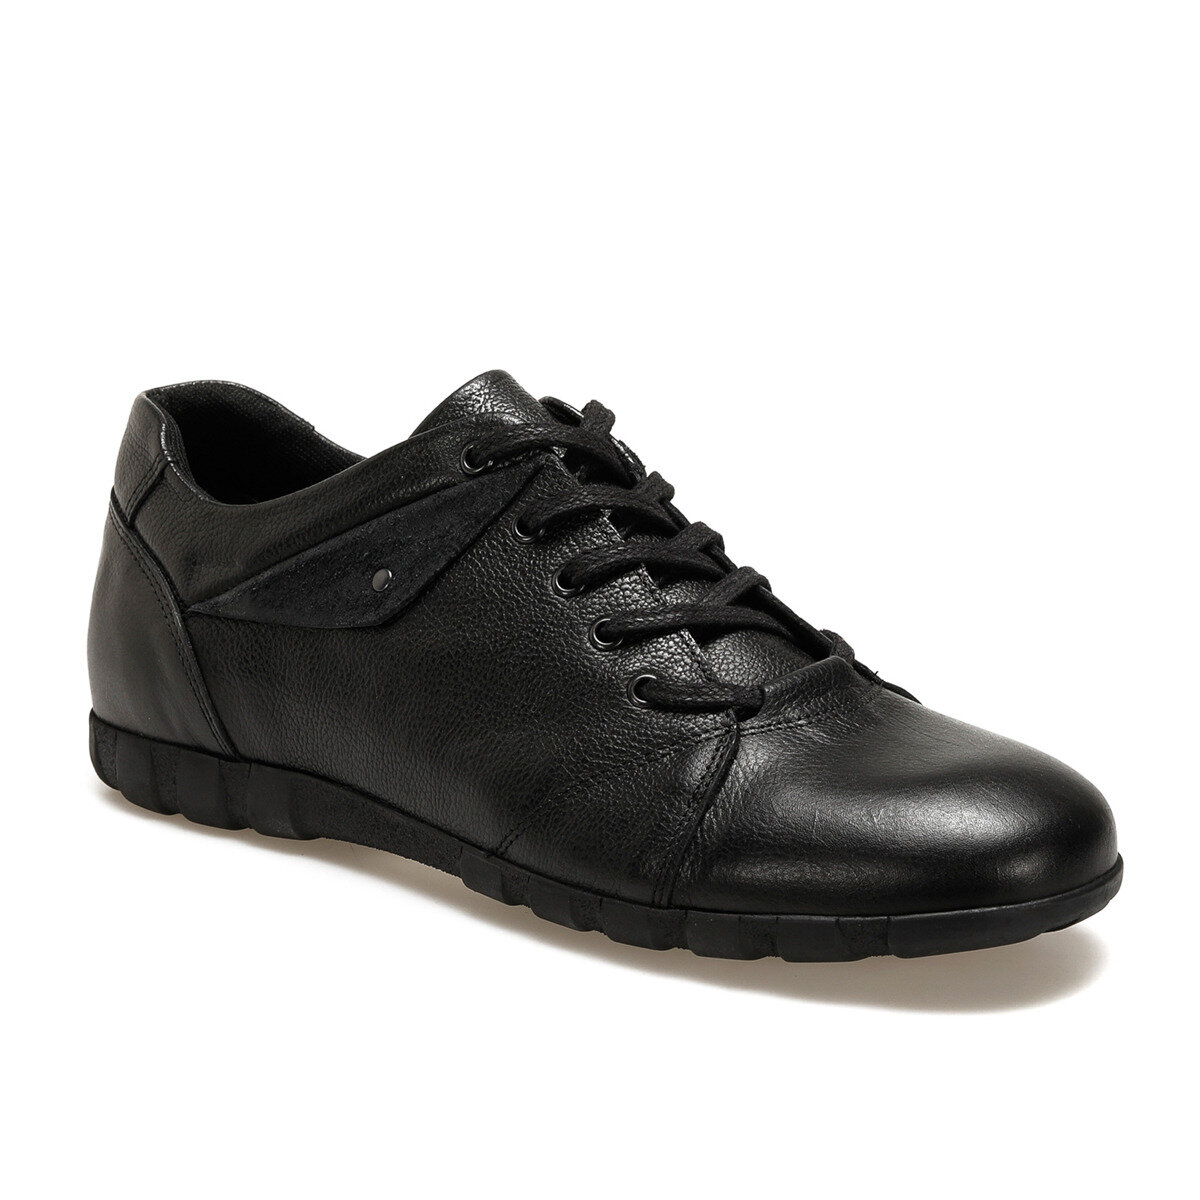 FLO NHT-01 Black Men Casual Shoes Oxide